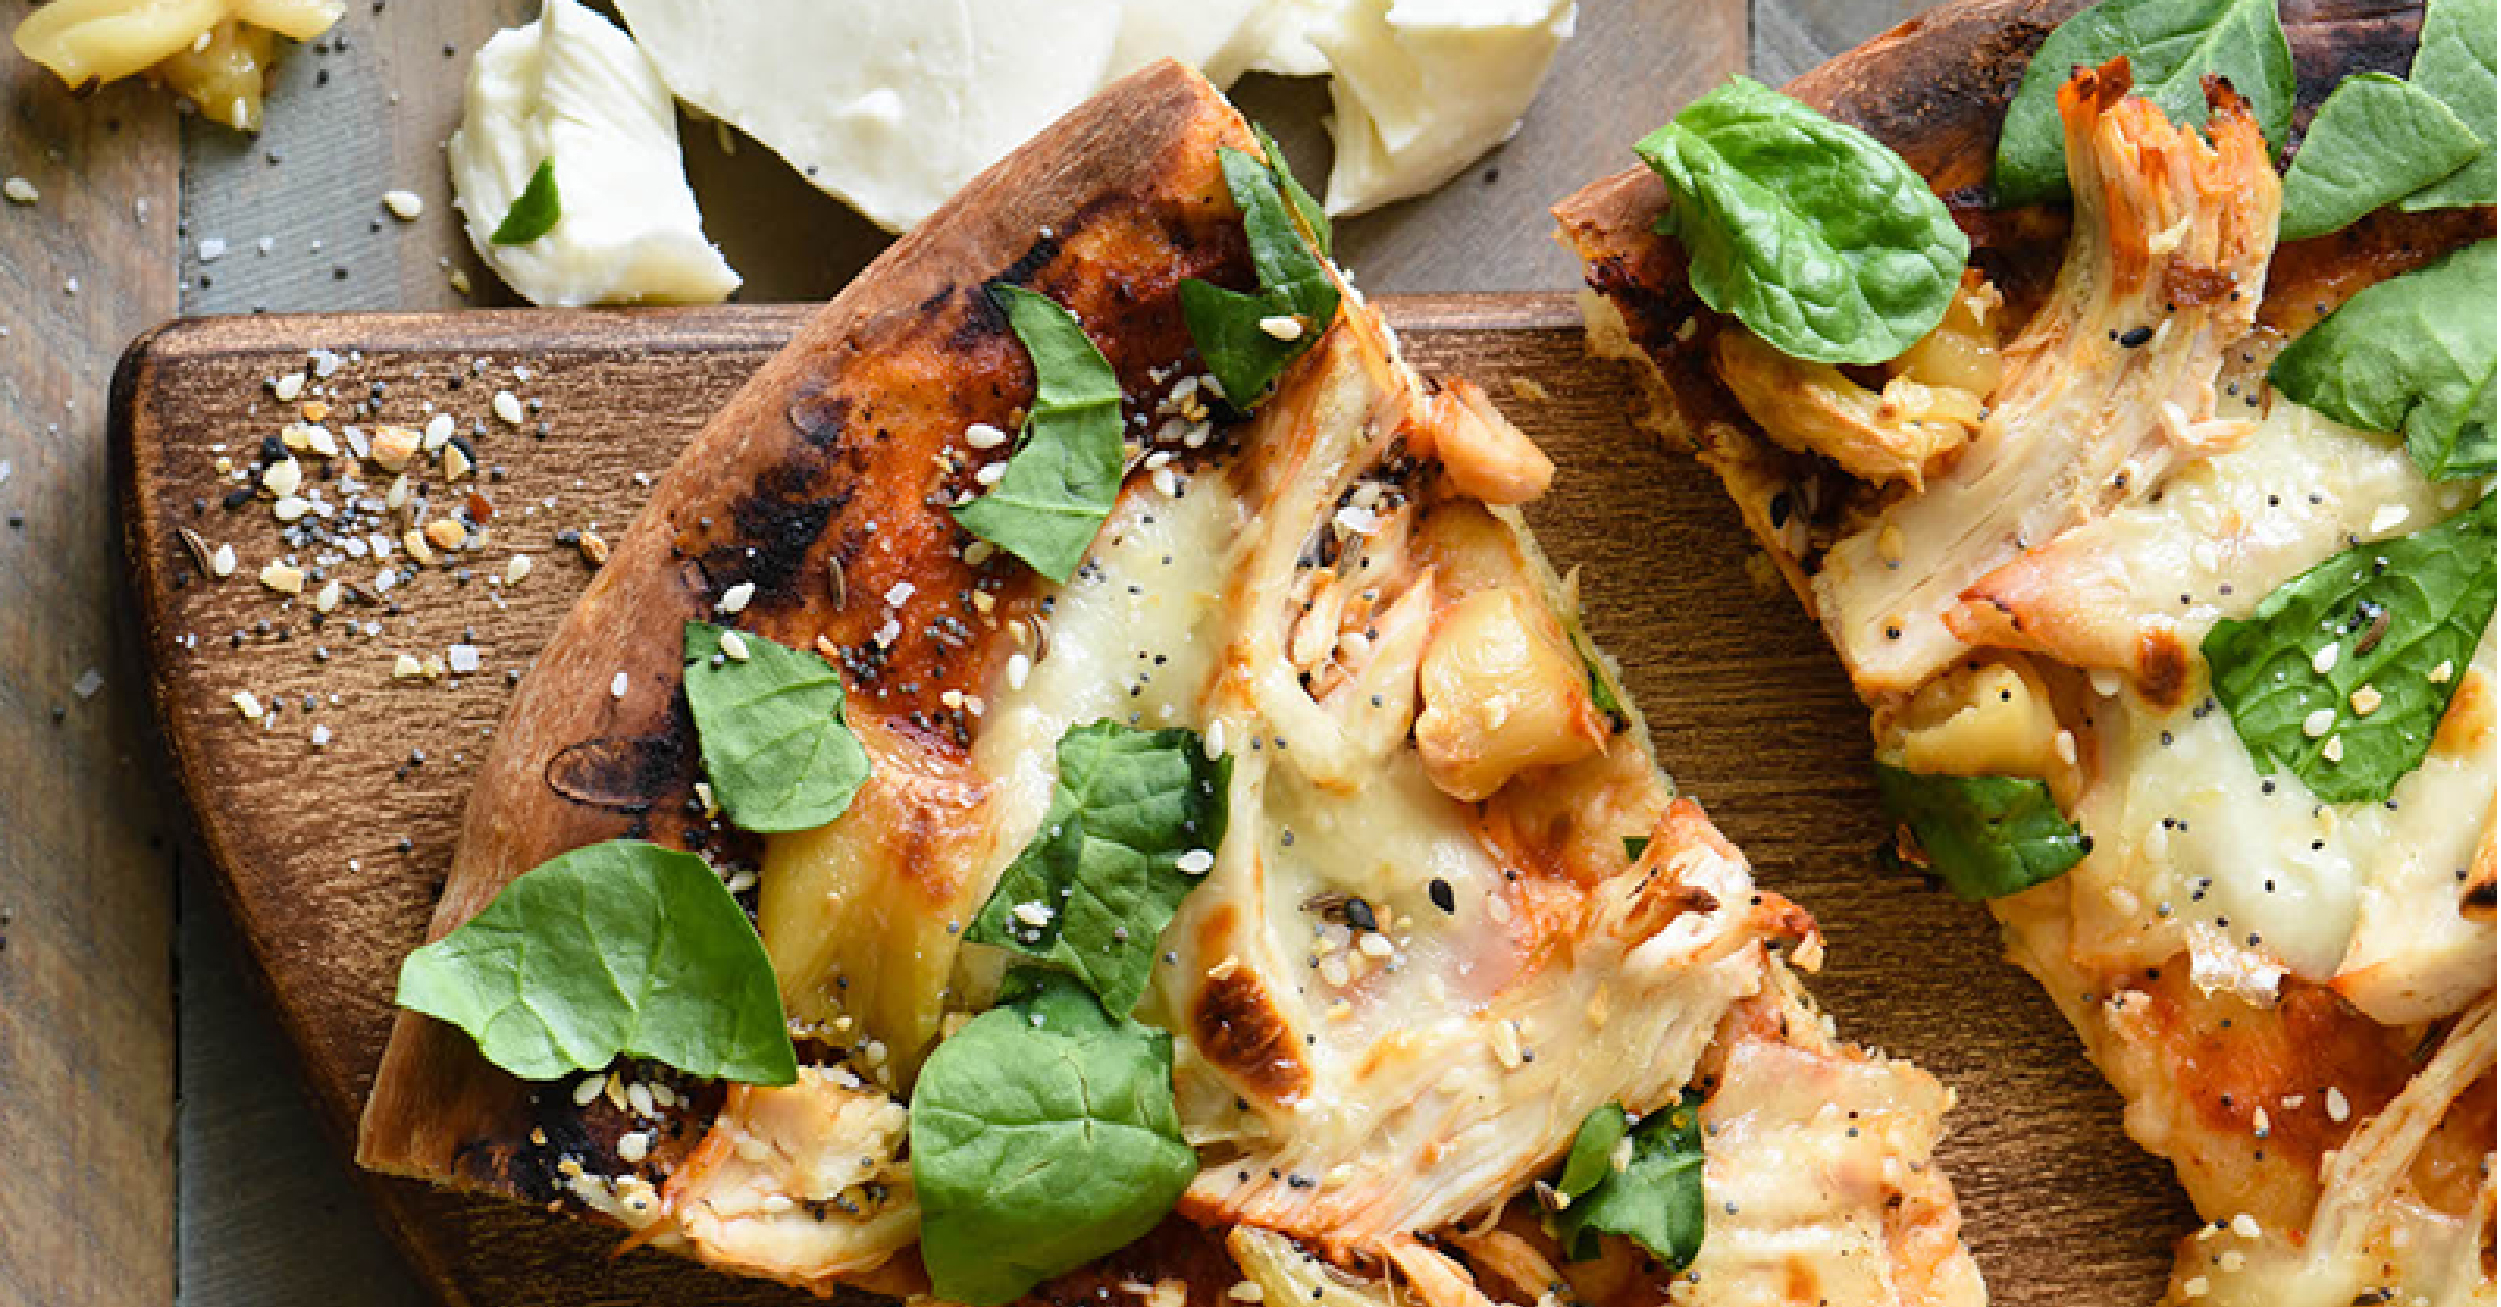 Grilled Chicken Pizza with Mozzarella and Roasted Garlic Stella Cheese